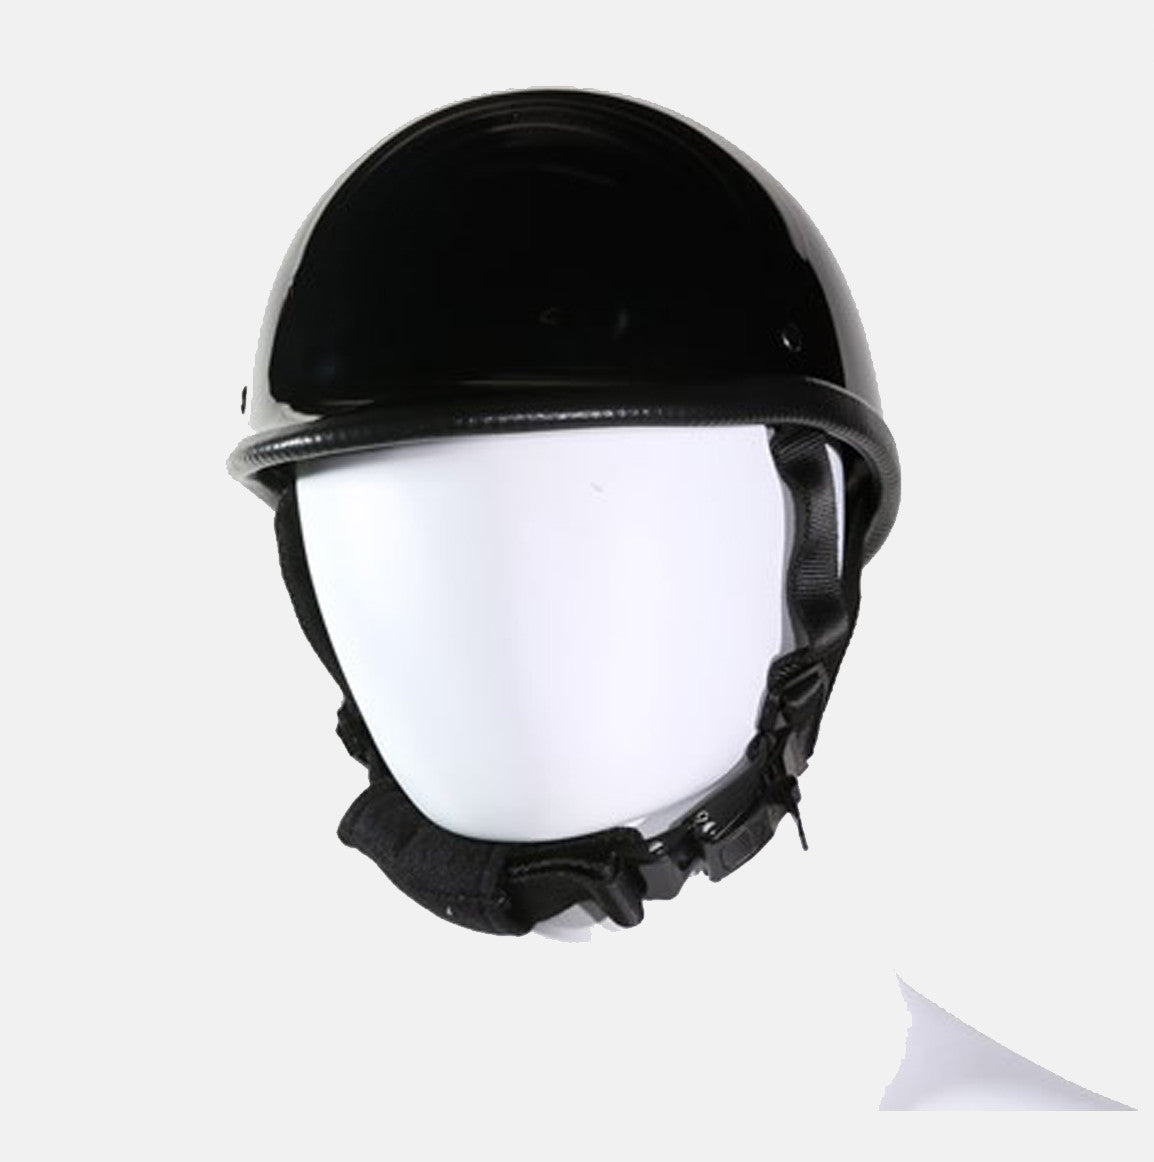 JOCKEY STYLE RIDING HELMET BLACK COMFORTABLE